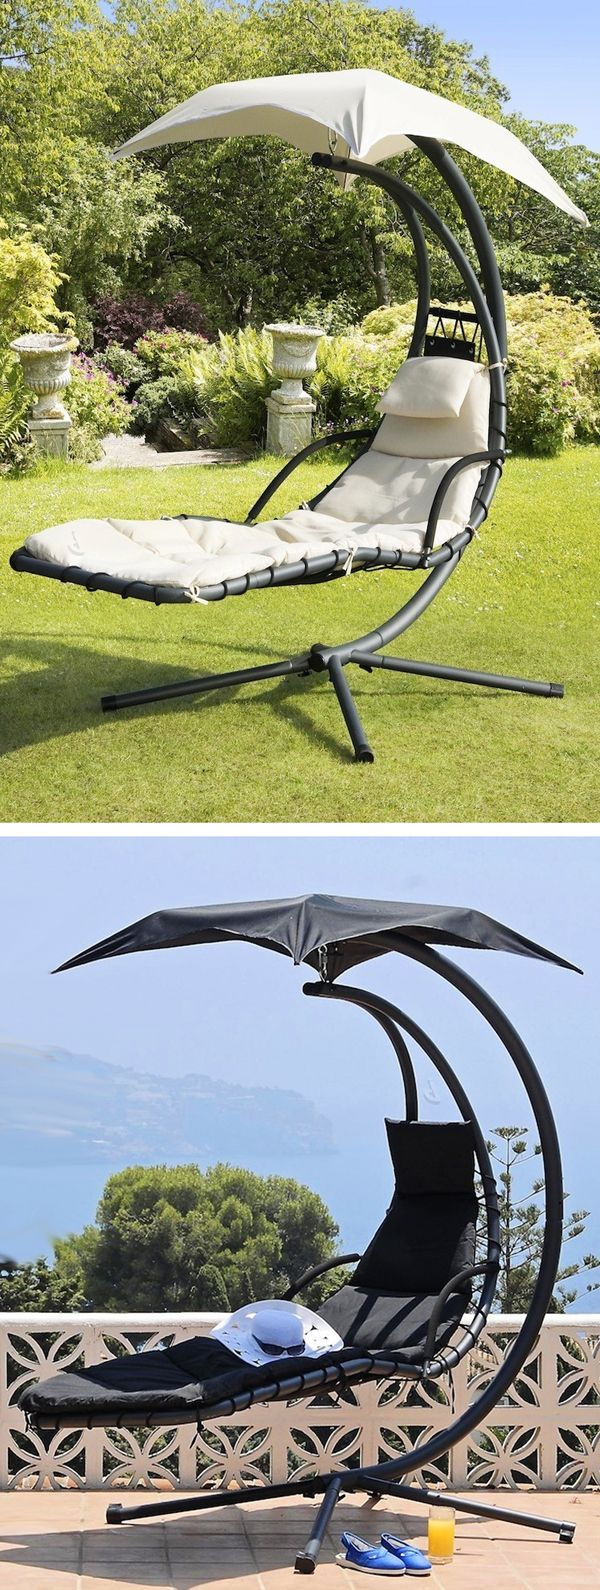 Helicopter canopy porch swing chair! #furniture_design